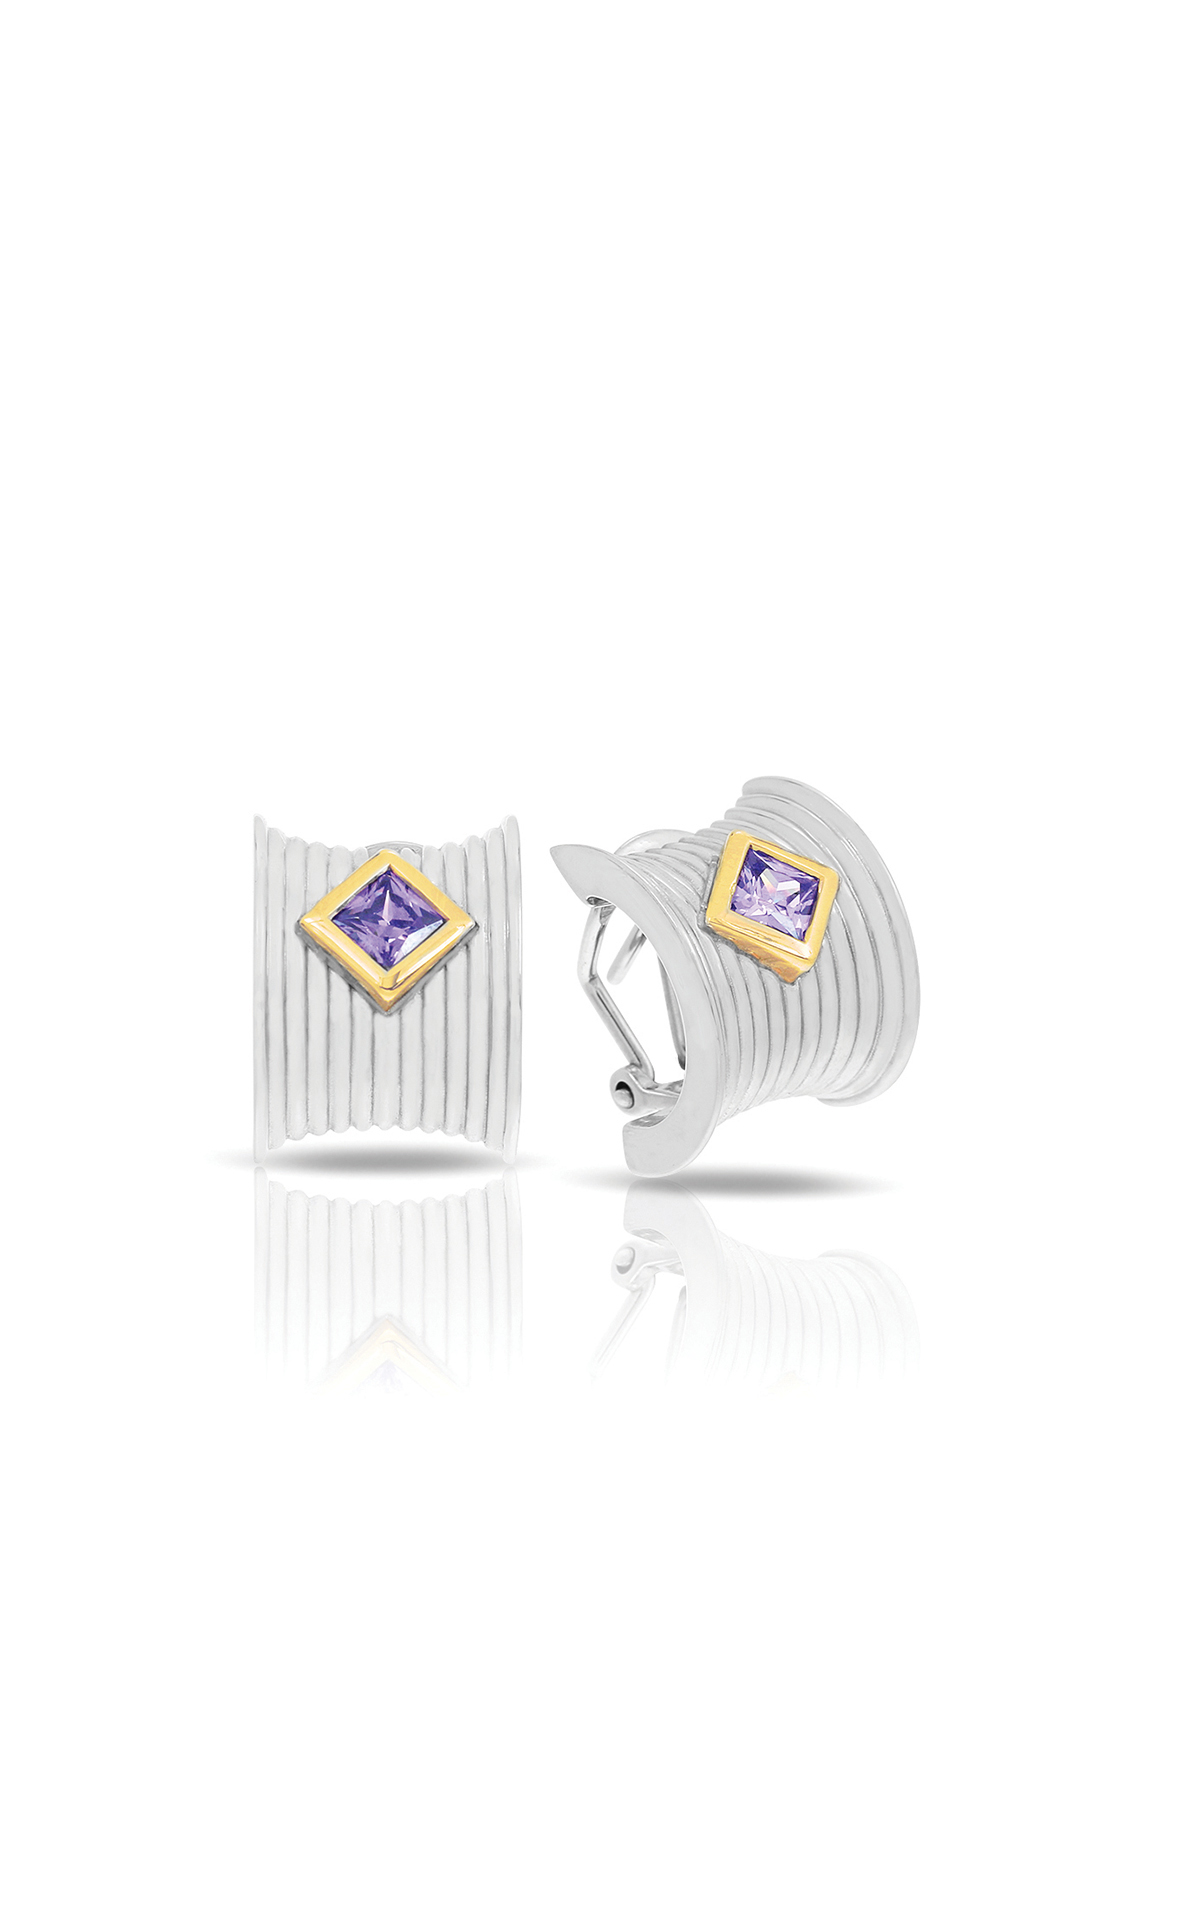 Belle Etoile Color Stone Valore Silver & Amethyst Earrings 3011720101 product image